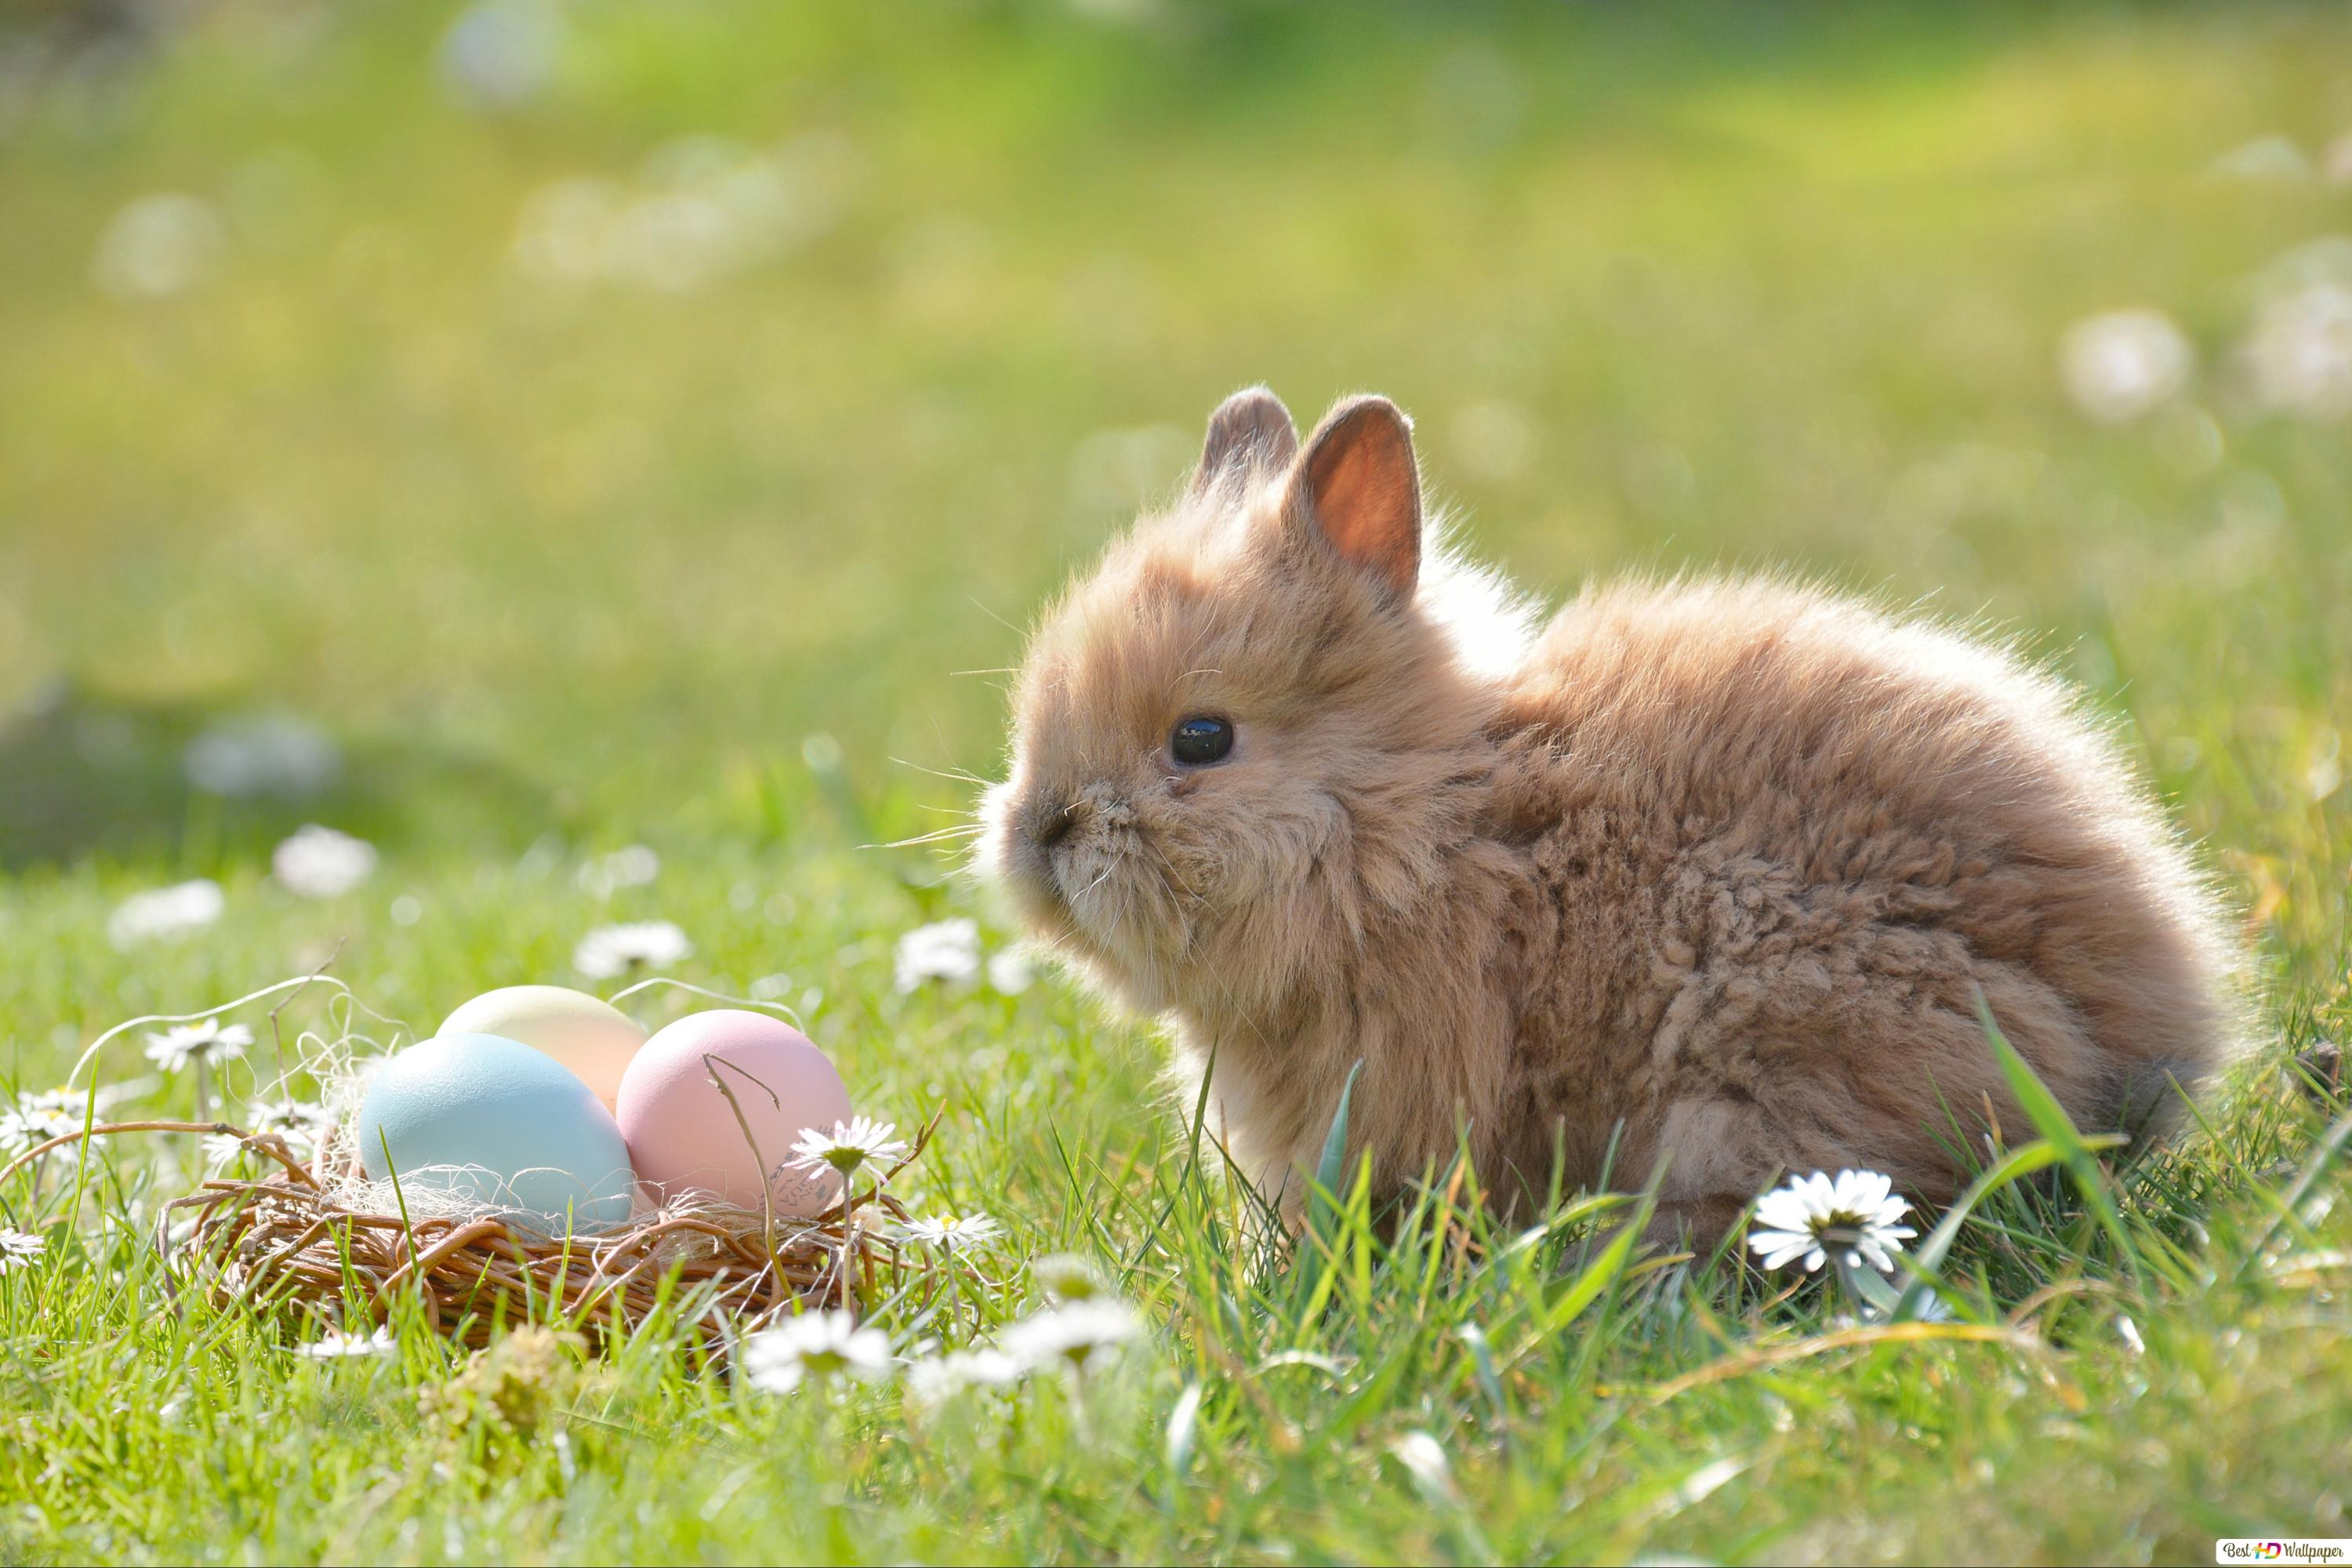 Cute Easter Bunny Hd Wallpaper Download